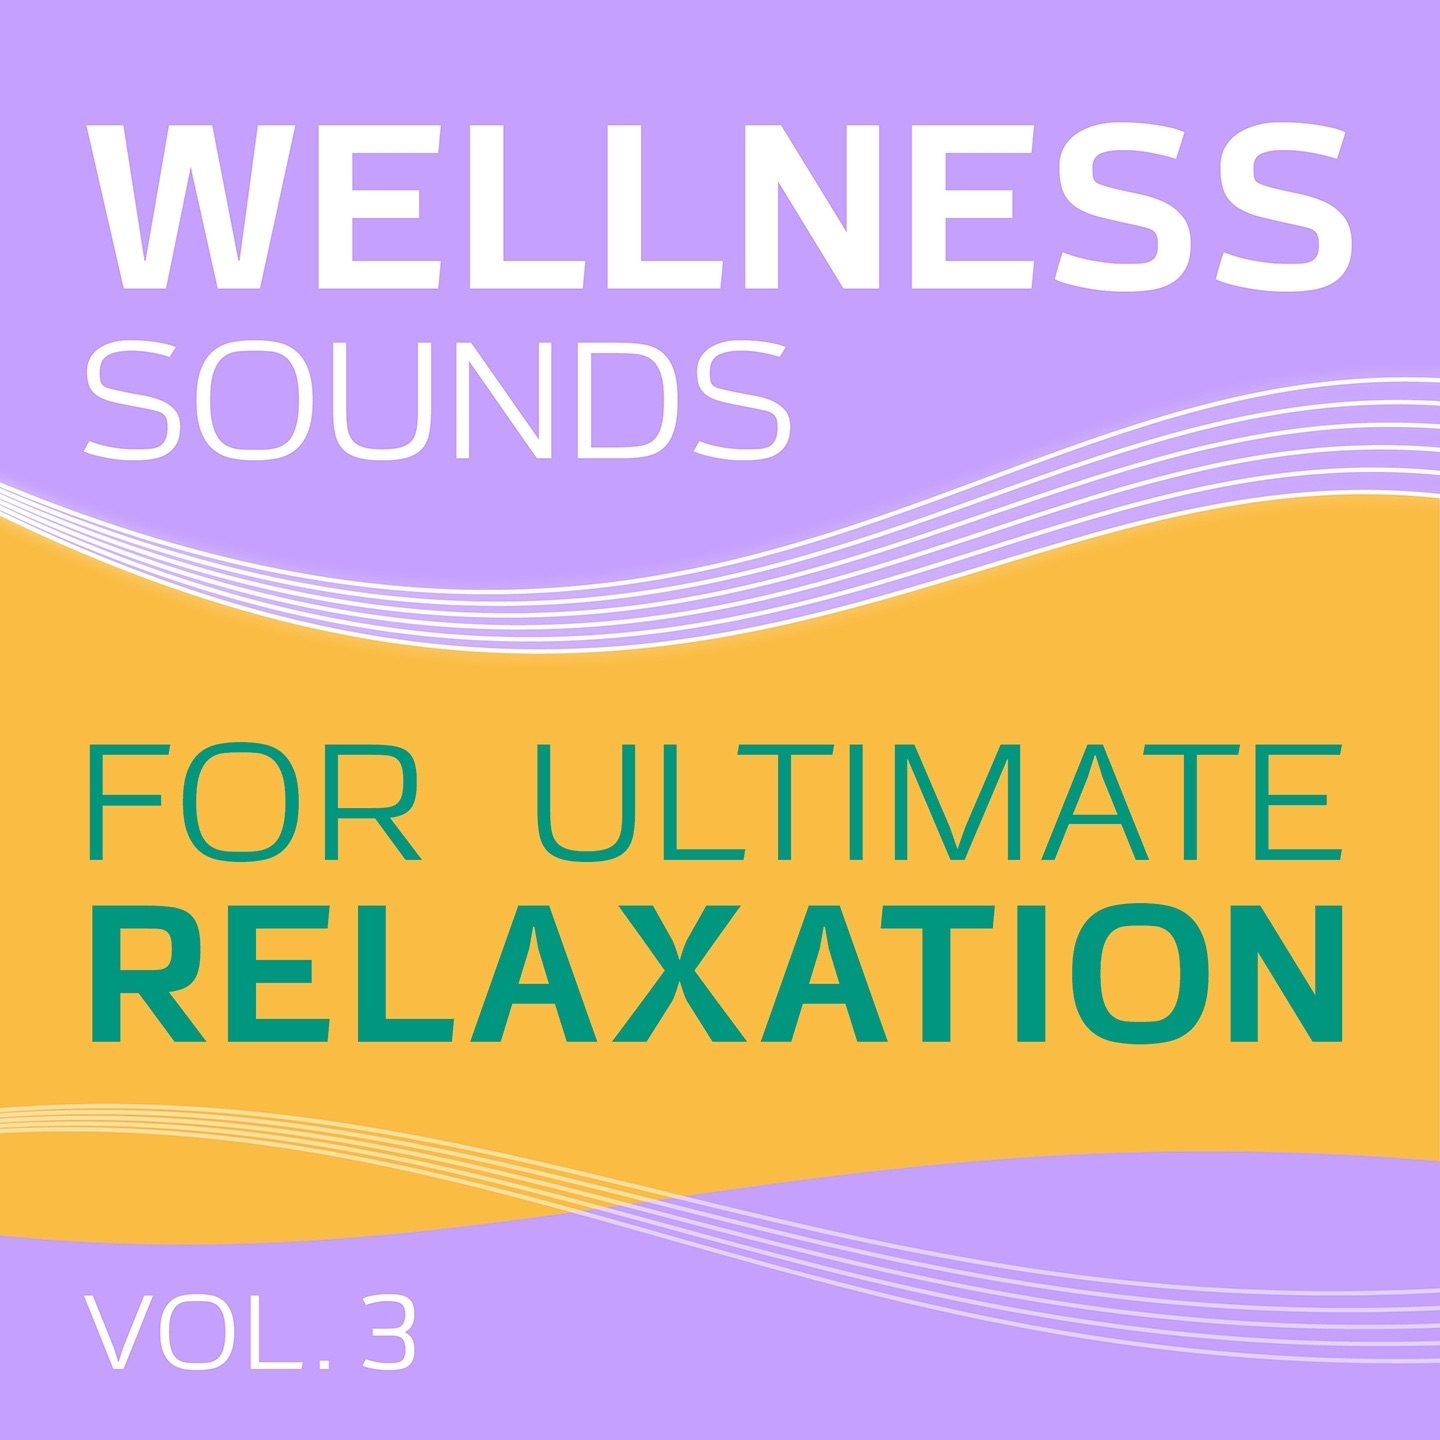 Wellness (Sounds for Ultimate Relaxation, Vol. 3)